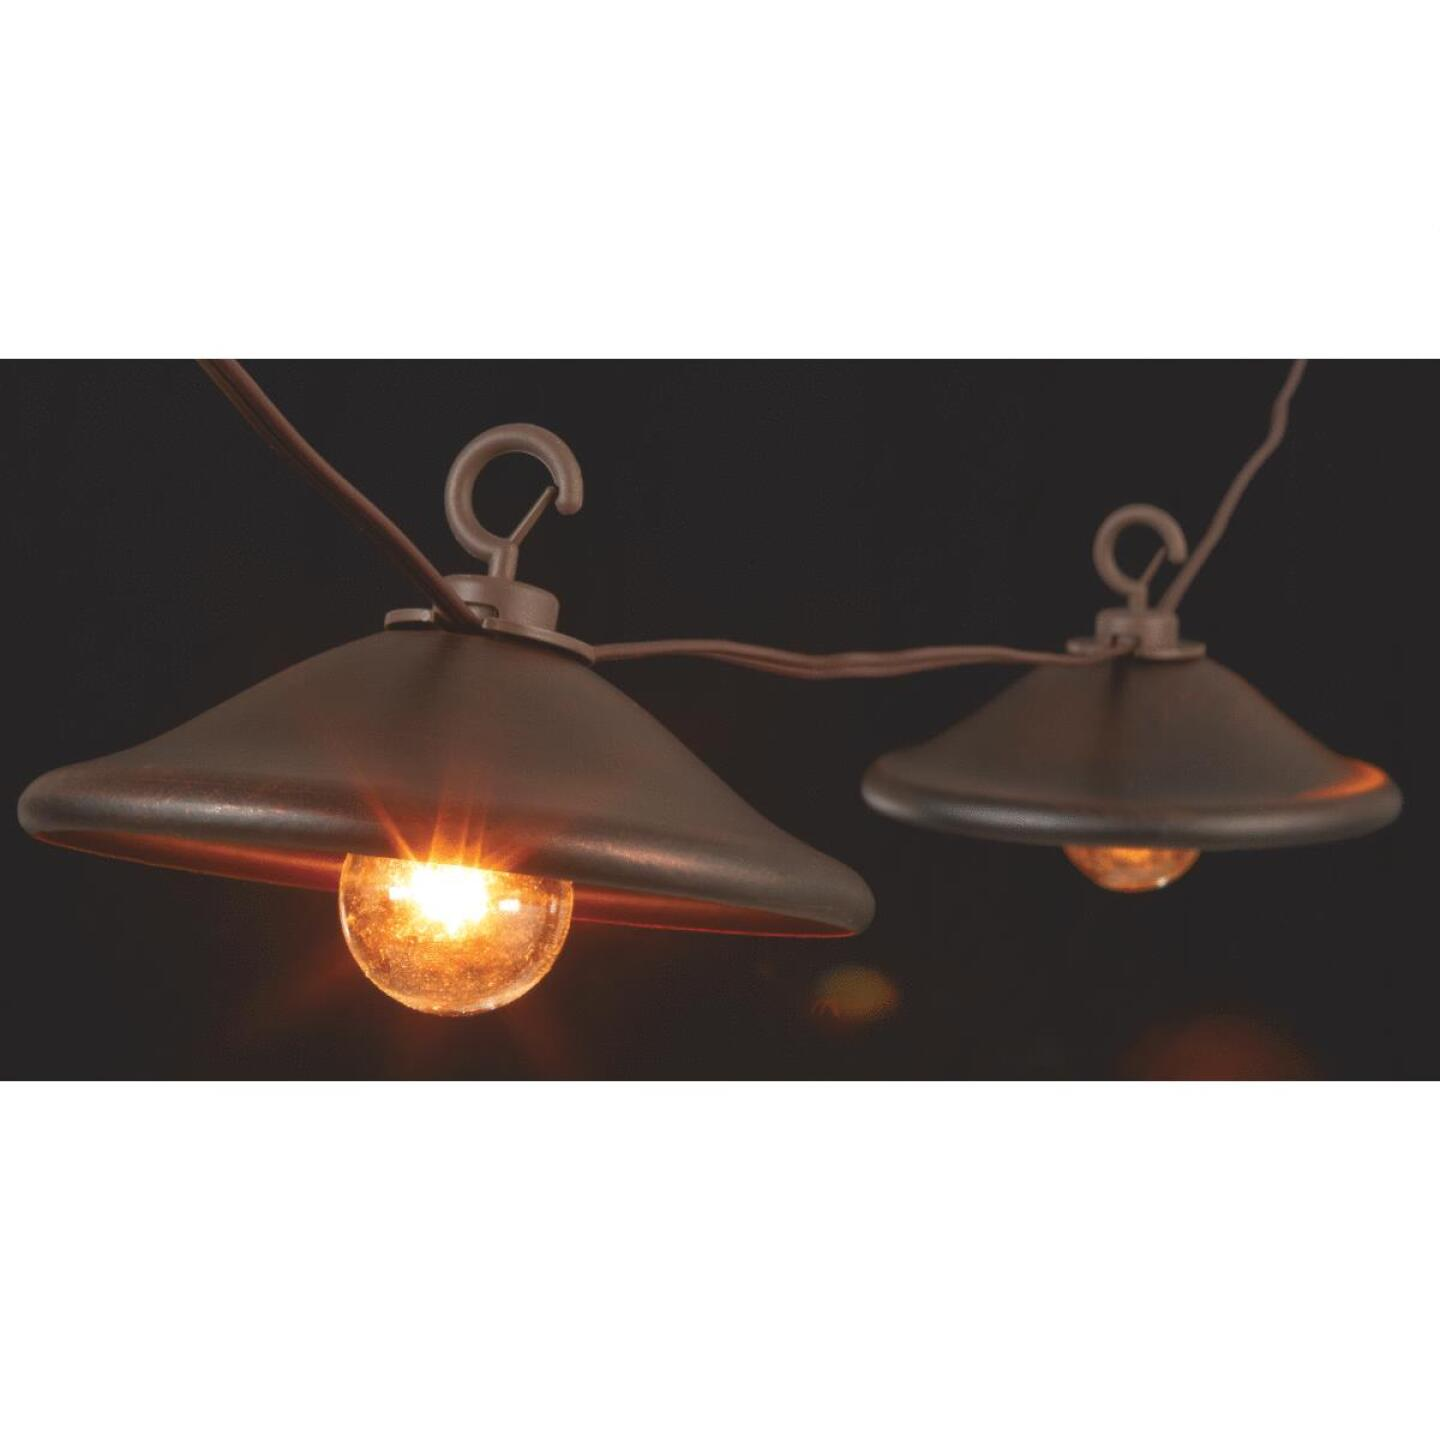 Gerson 10 Ft. 10-Light Clear Bronze Cover String Lights Image 1